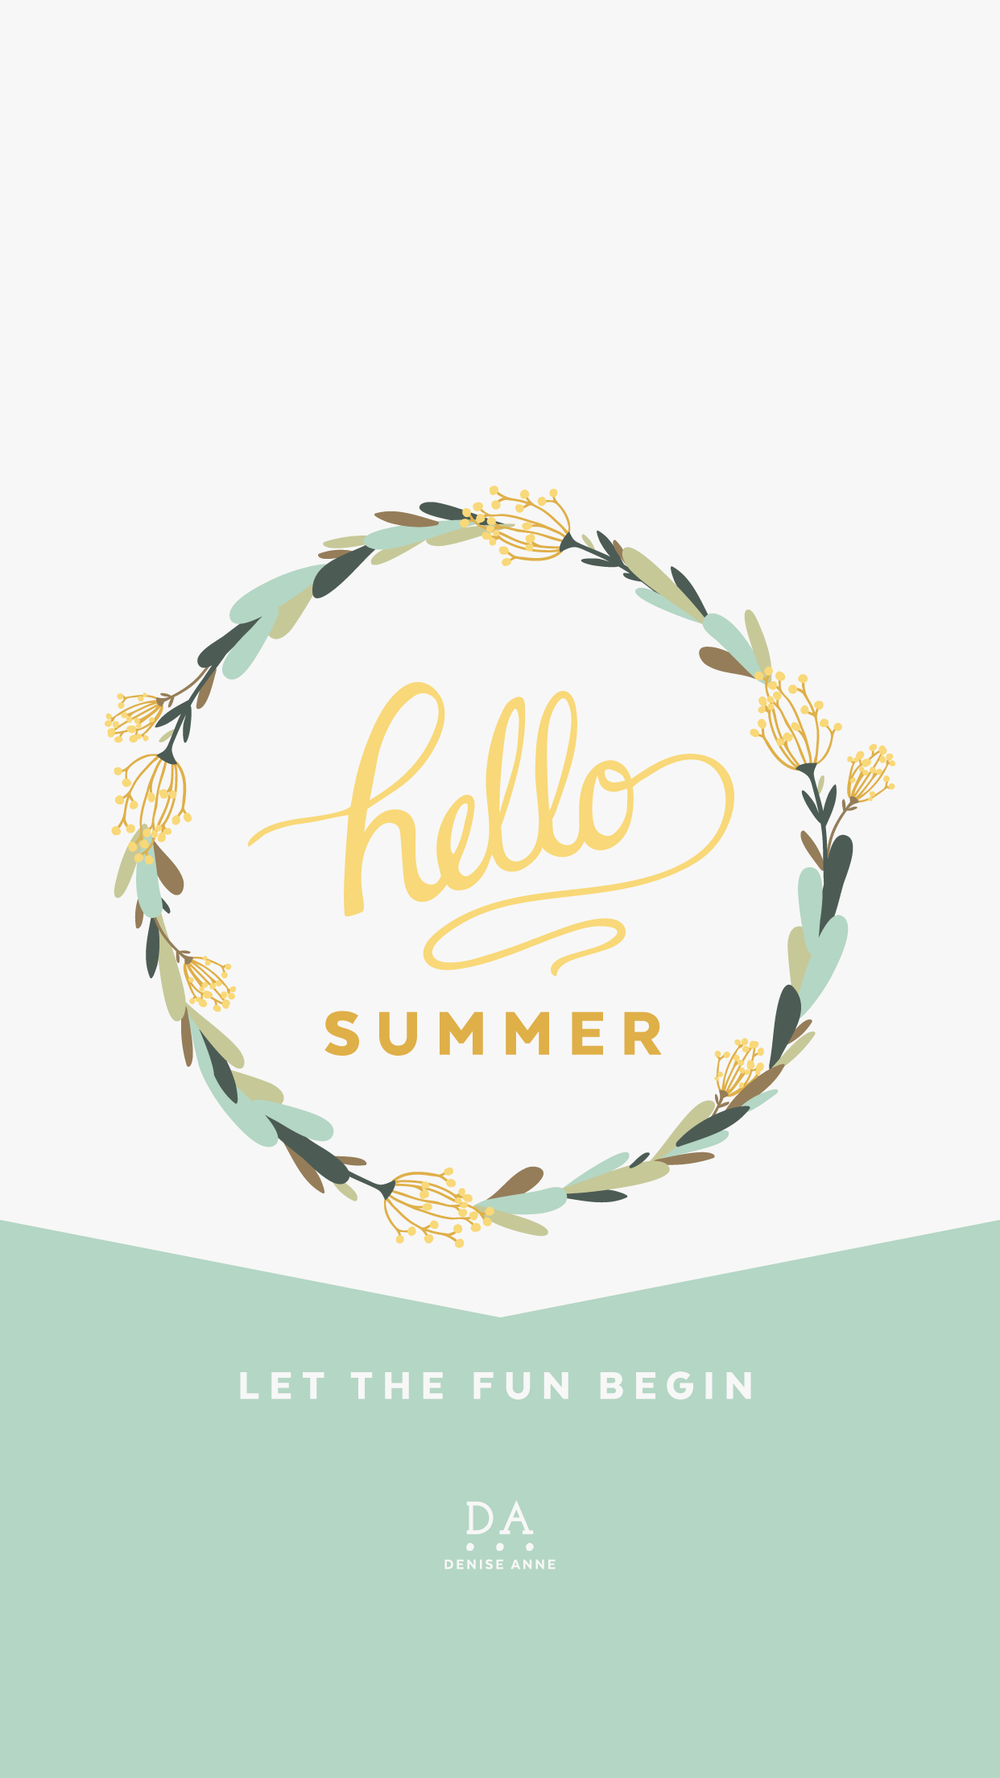 Hello Summer - click for download links